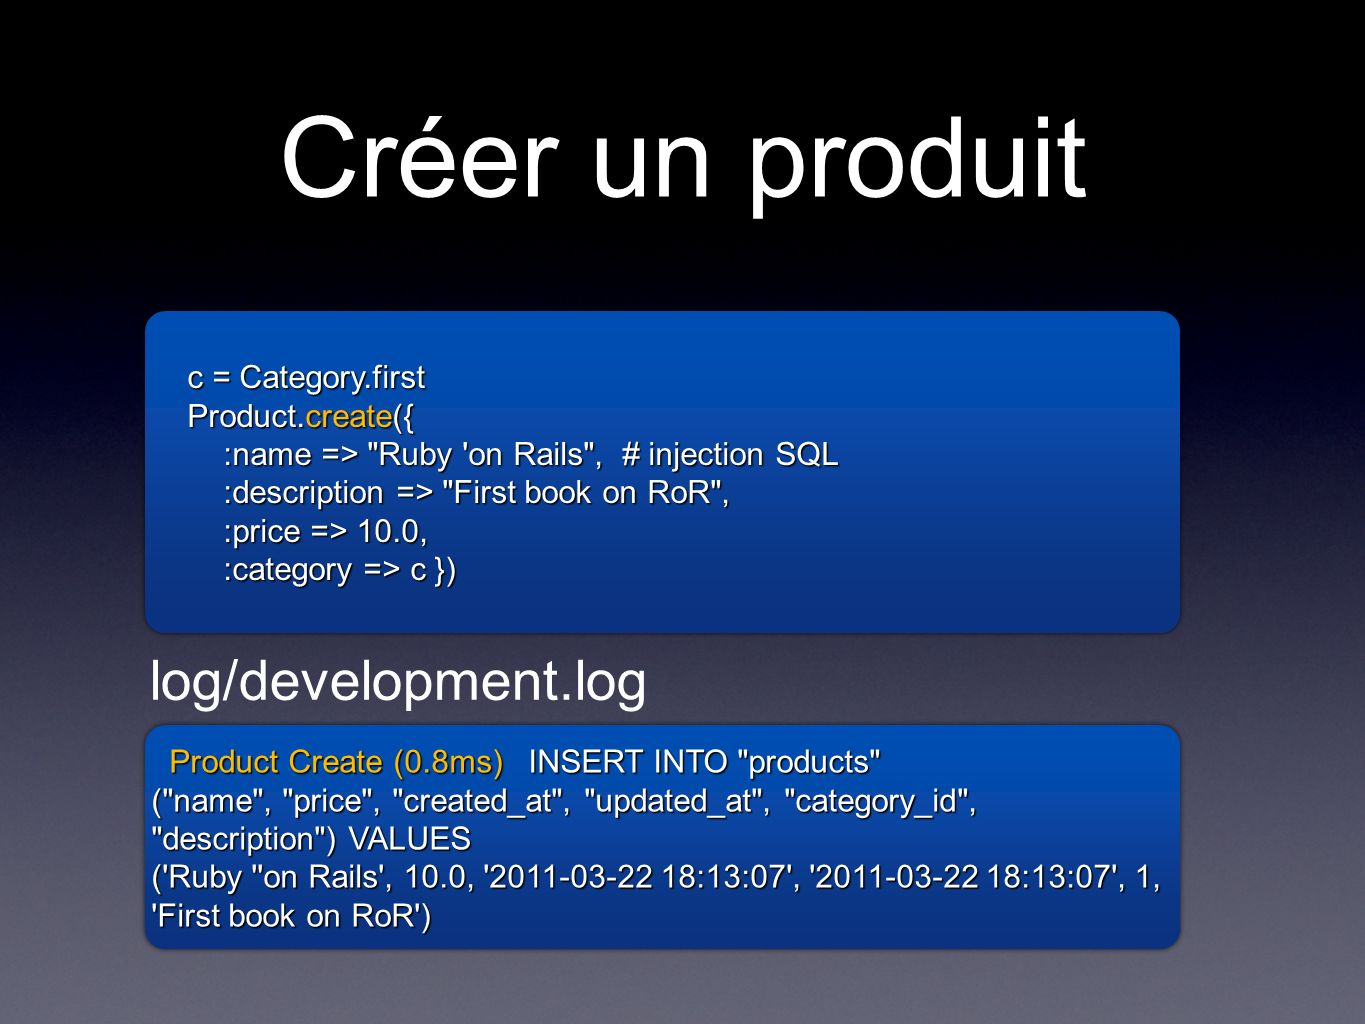 Créer un produit c = Category.first Product.create({ :name => Ruby on Rails , # injection SQL :description => First book on RoR , :price => 10.0, :category => c }) c = Category.first Product.create({ :name => Ruby on Rails , # injection SQL :description => First book on RoR , :price => 10.0, :category => c }) Product Create (0.8ms) INSERT INTO products Product Create (0.8ms) INSERT INTO products ( name , price , created_at , updated_at , category_id , description ) VALUES ( Ruby on Rails , 10.0, :13:07 , :13:07 , 1, First book on RoR ) Product Create (0.8ms) INSERT INTO products Product Create (0.8ms) INSERT INTO products ( name , price , created_at , updated_at , category_id , description ) VALUES ( Ruby on Rails , 10.0, :13:07 , :13:07 , 1, First book on RoR ) log/development.log